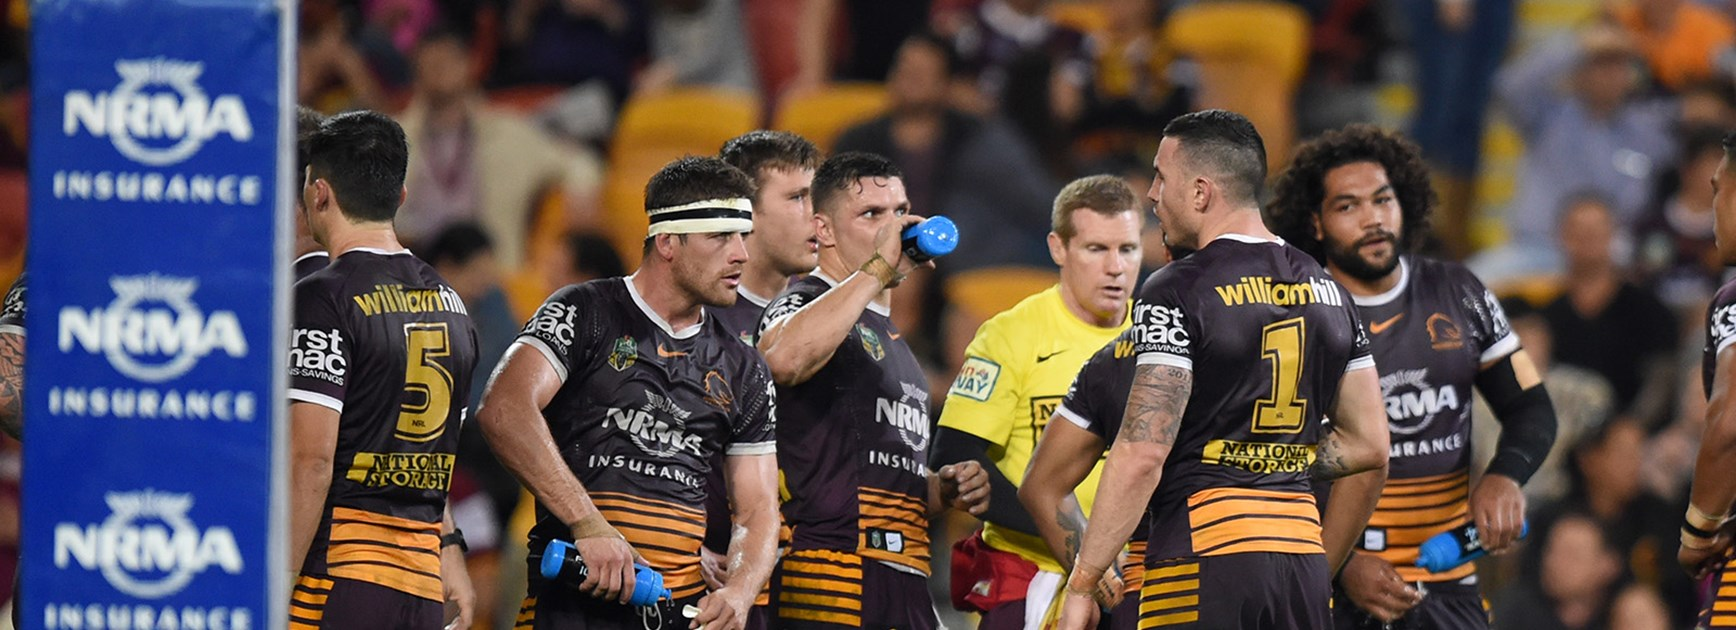 The Broncos look on after another Panthers try in the first half at Suncorp Stadium.